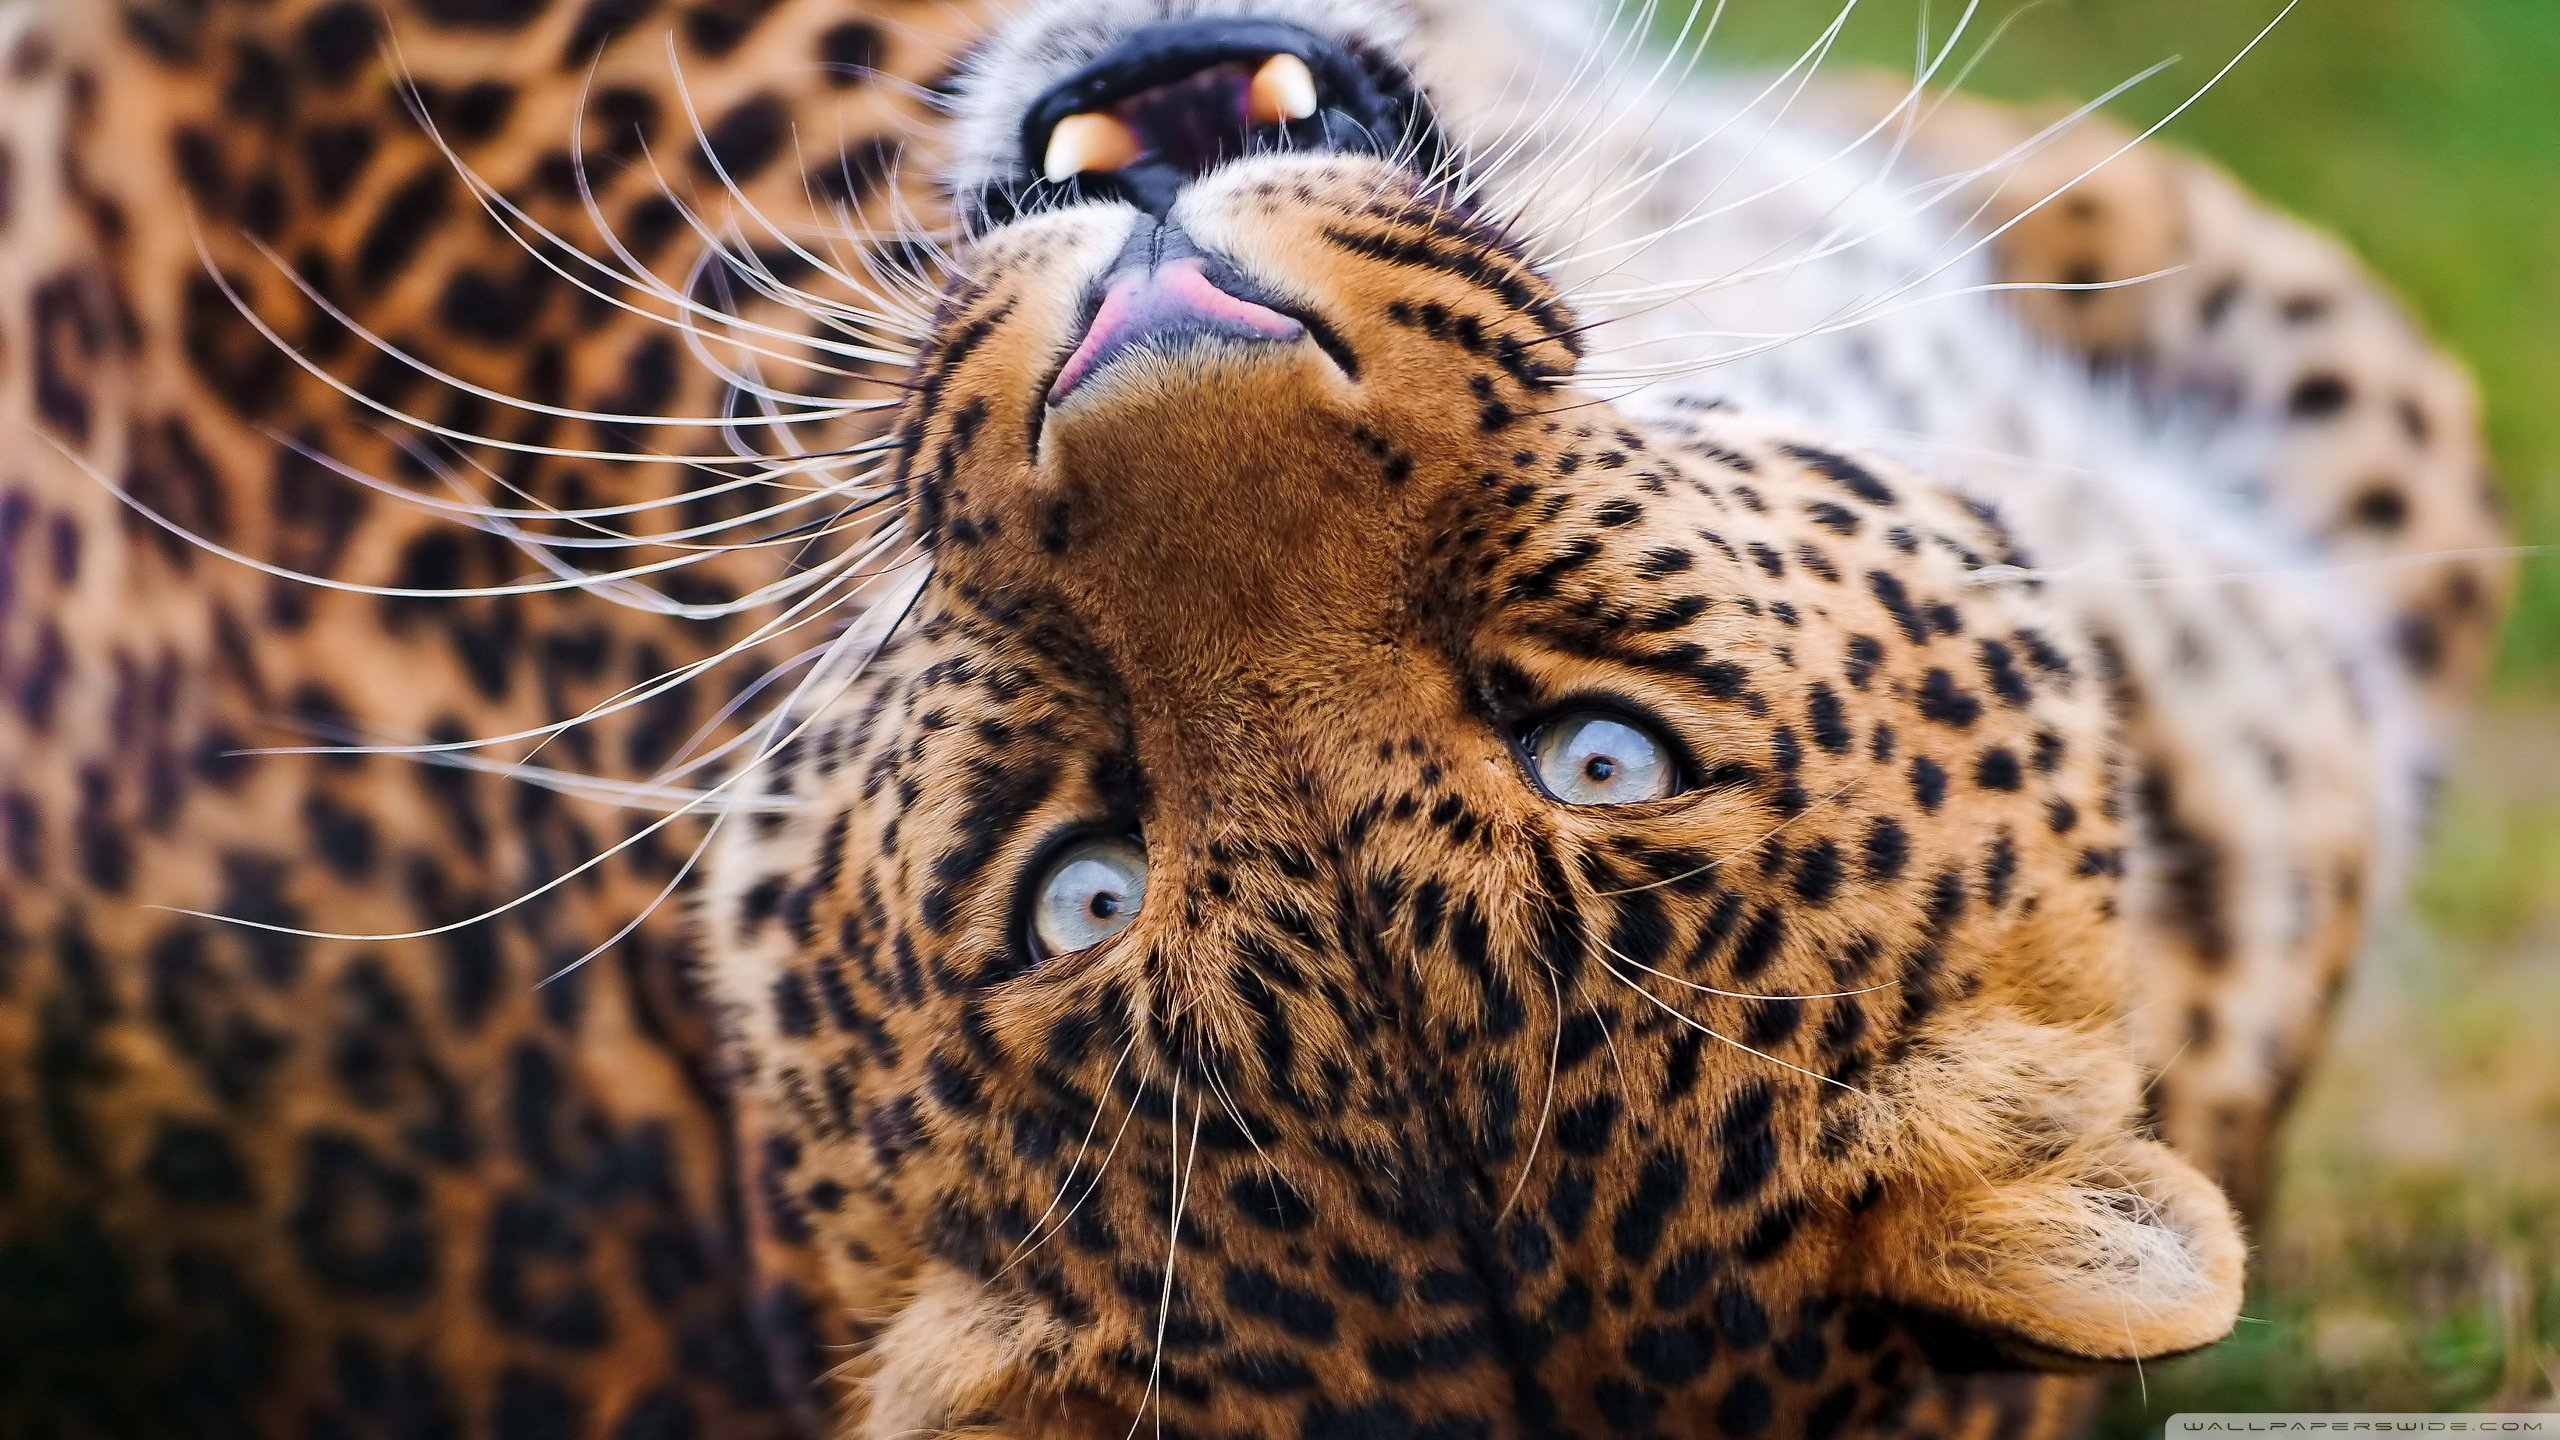 Free download Jaguar background ID:30193 hd 2560x1440 for PC